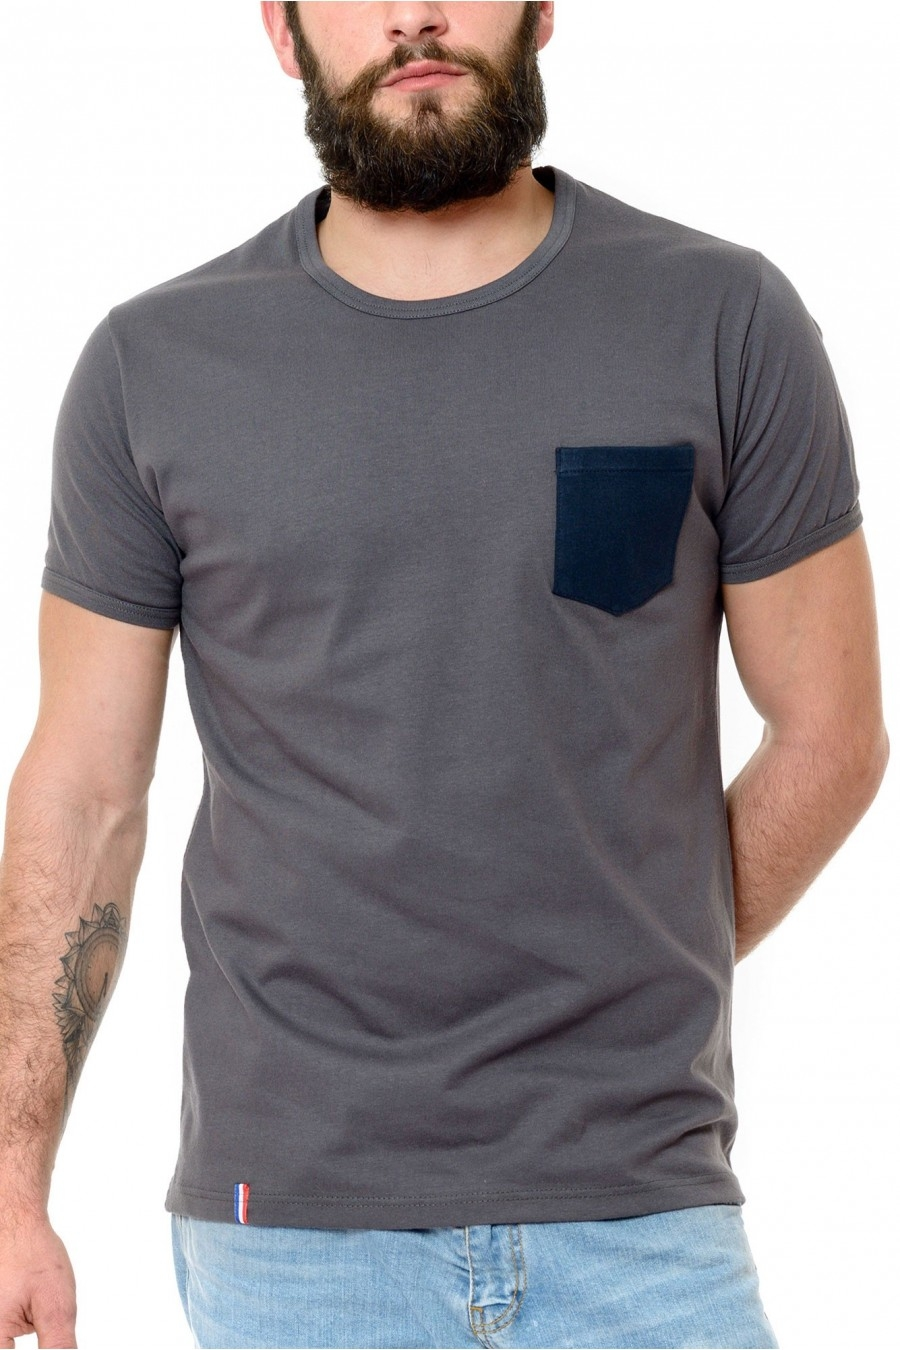 Tee shirt Homme Gris - Made in France - Bio